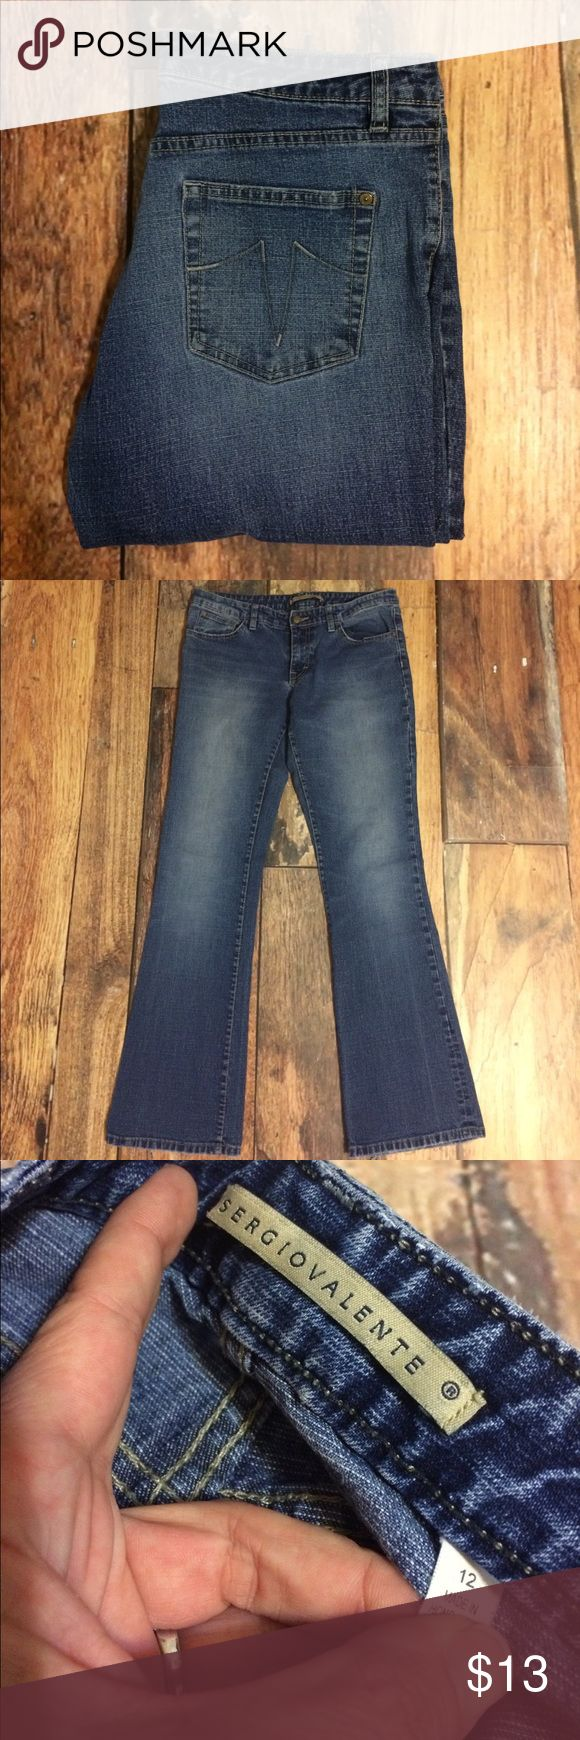 Sergio Valente Boot Cut Jeans Gently worn. Size 12 Sergio Valente Boot Cut Jeans. 90% cotton, 8% polyester, 2% spandex. Zip fly. 32 inch inseam. Picture five shows wear at bottom of jeans from foot drag. No rips, stains or tears. Non-smoking home. sergio valente Jeans Boot Cut